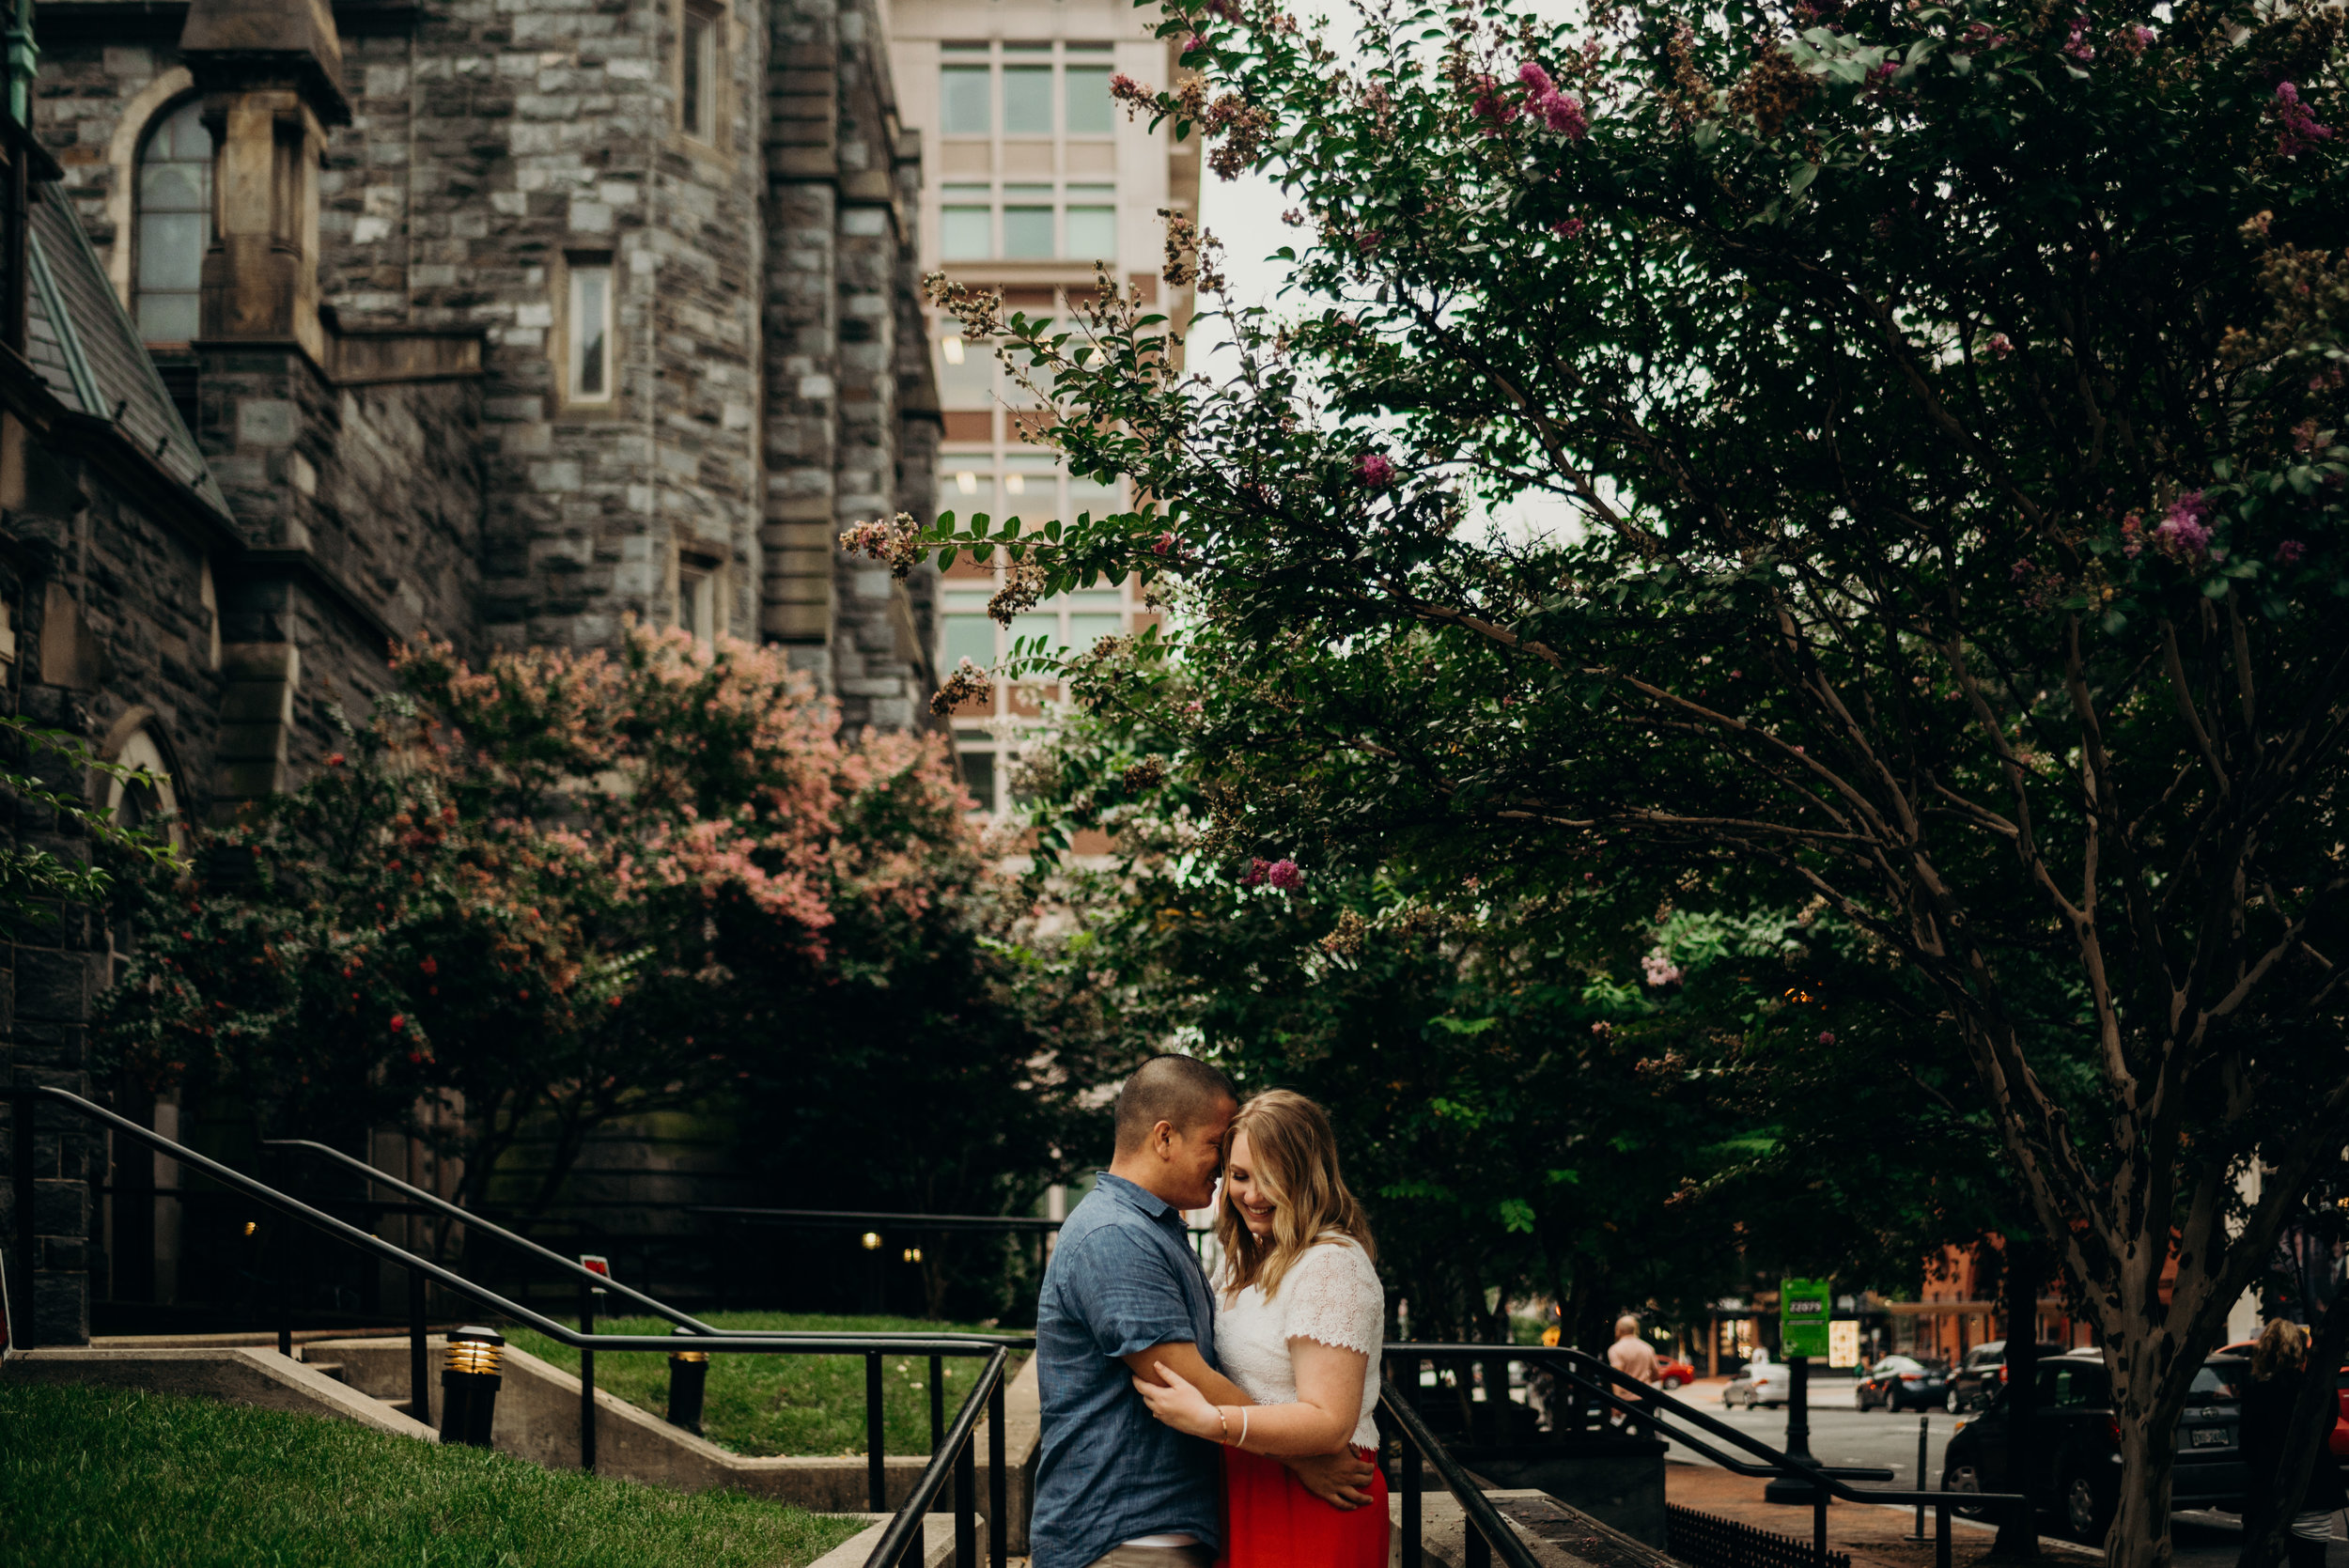 engaged couple embracing with trees in the background in Washington, DC